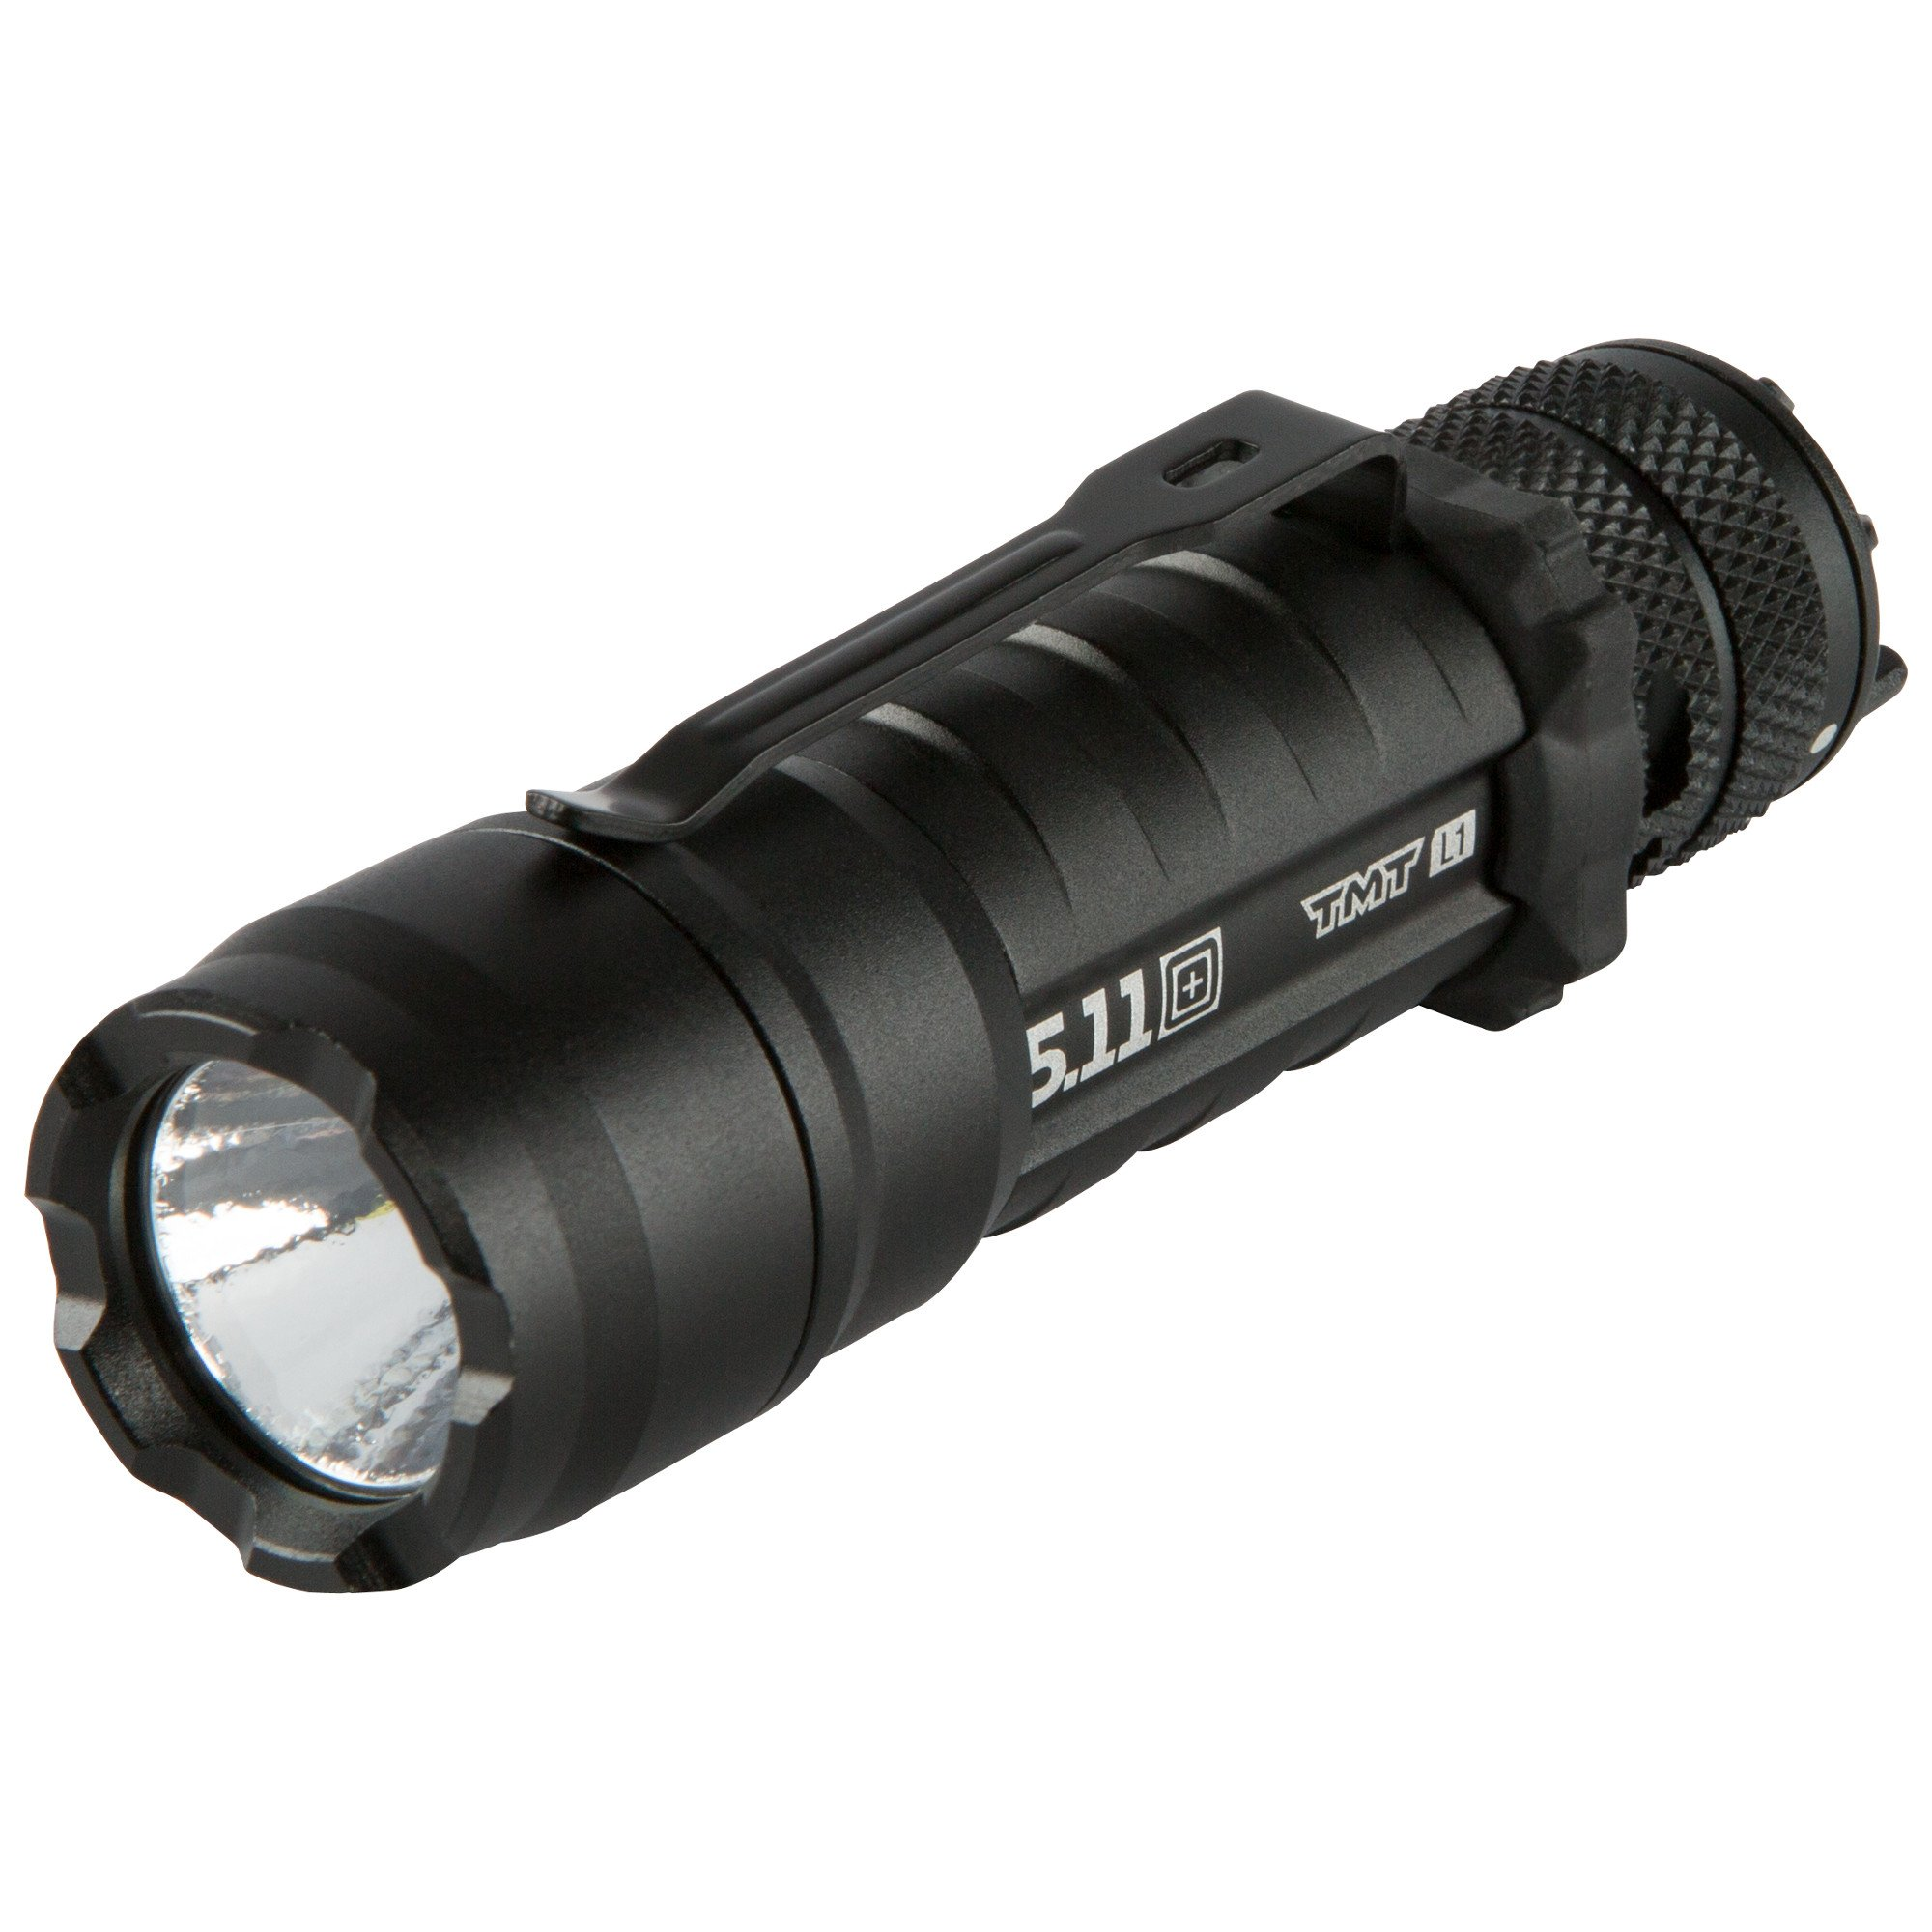 5.11 TMT L1 Tactical Flashlight Military Grade 3.9in Length with 212 Lumens, Modes (steady on, high, strobe, low), Aerospace Aluminum, Gold Plated Contacts for Military, Police, EMS, Adventurer - Style# 53031 - Black